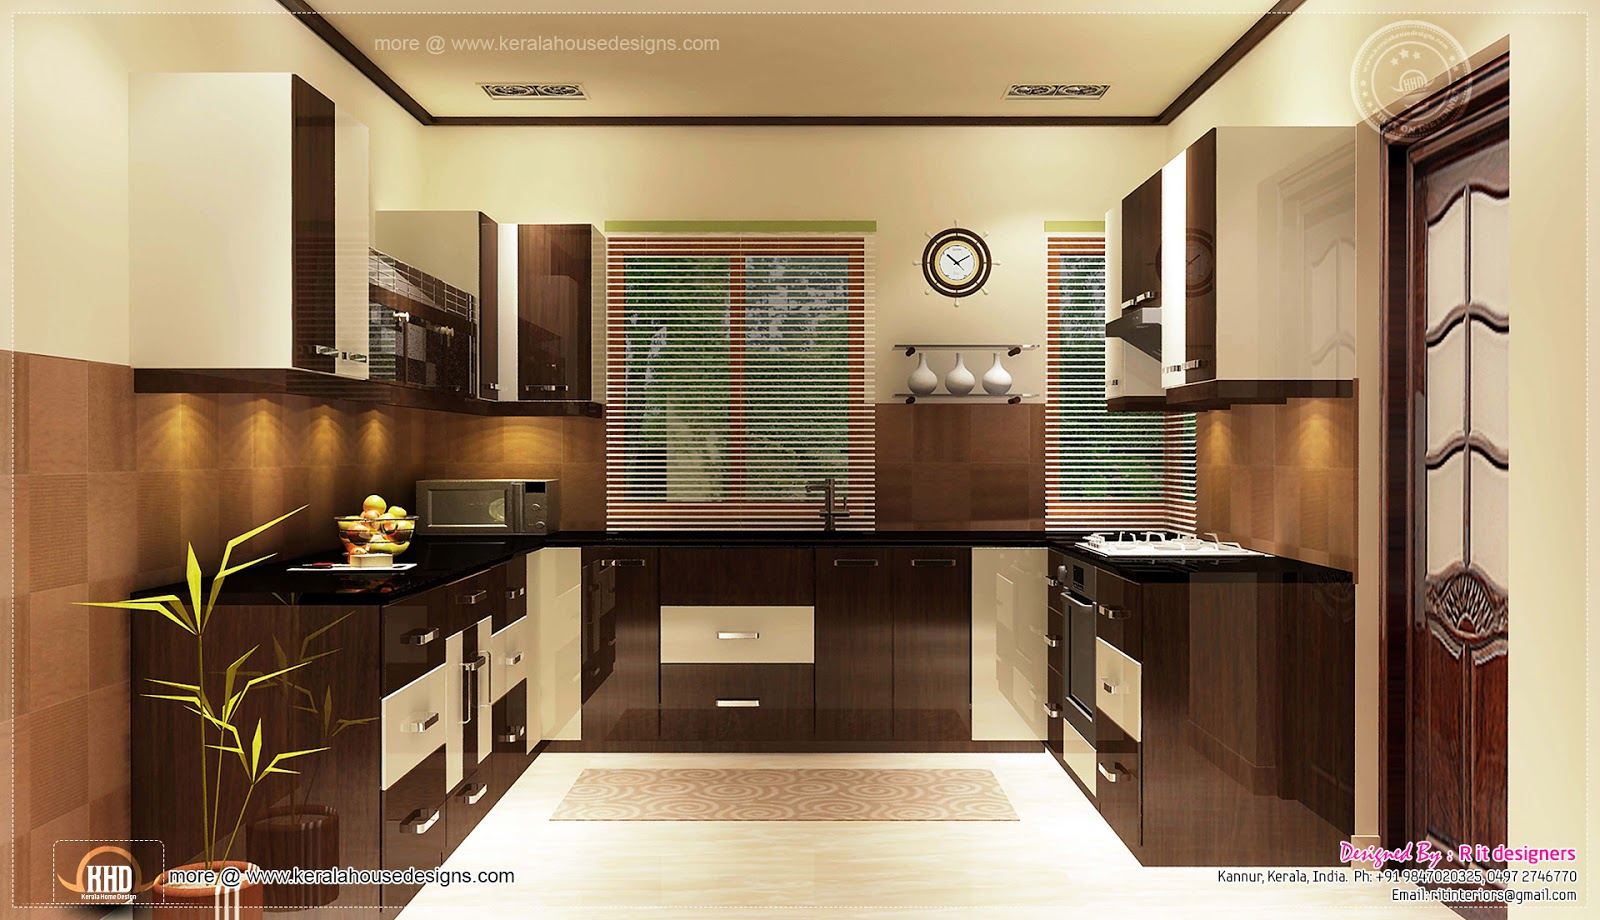 Home interior designs by rit designers kerala home design and floor plans - House interior images ...